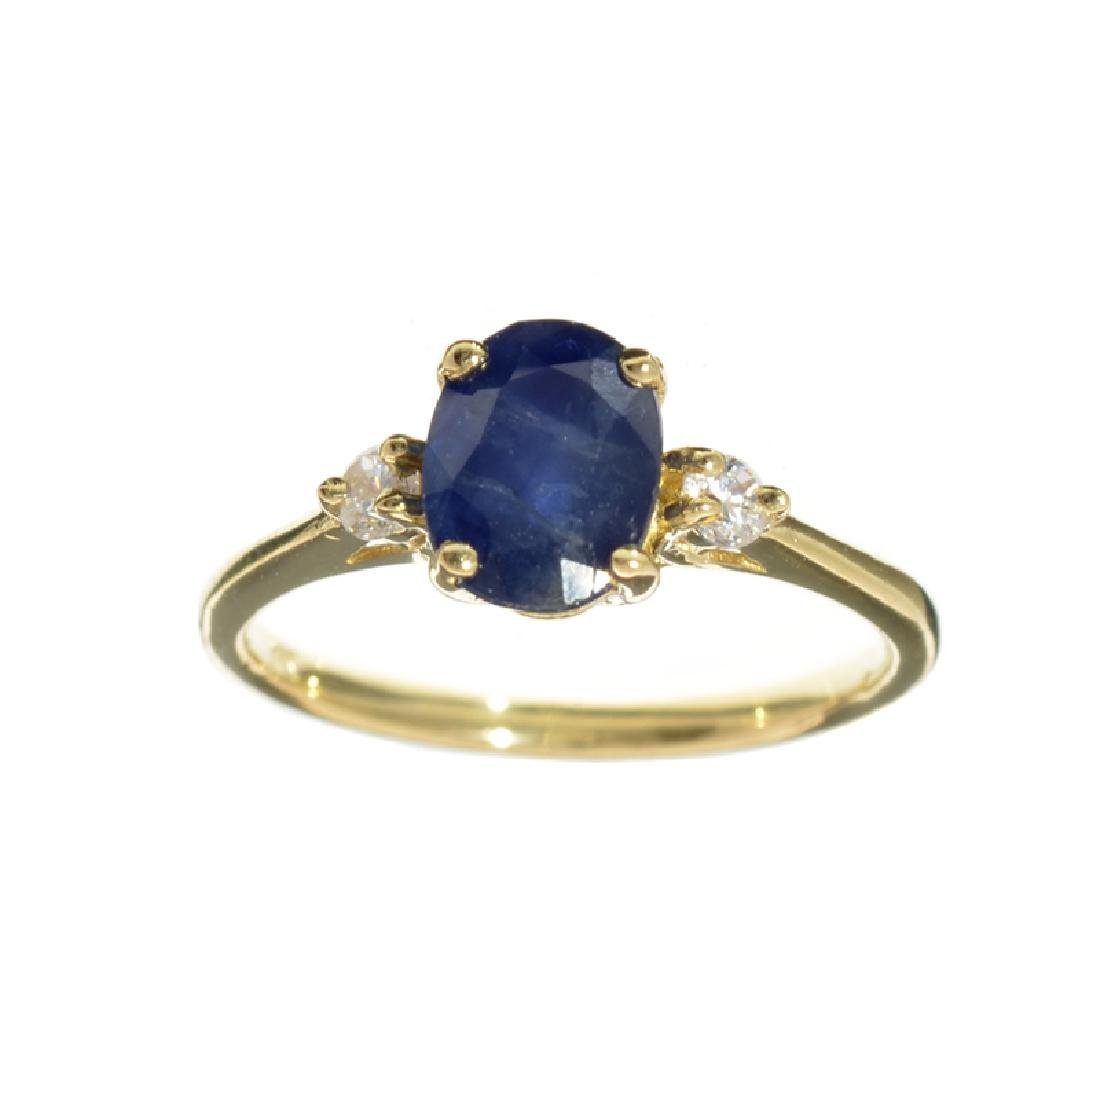 APP: 1k Fine Jewelry 14 KT Gold, 1.61CT Blue And White